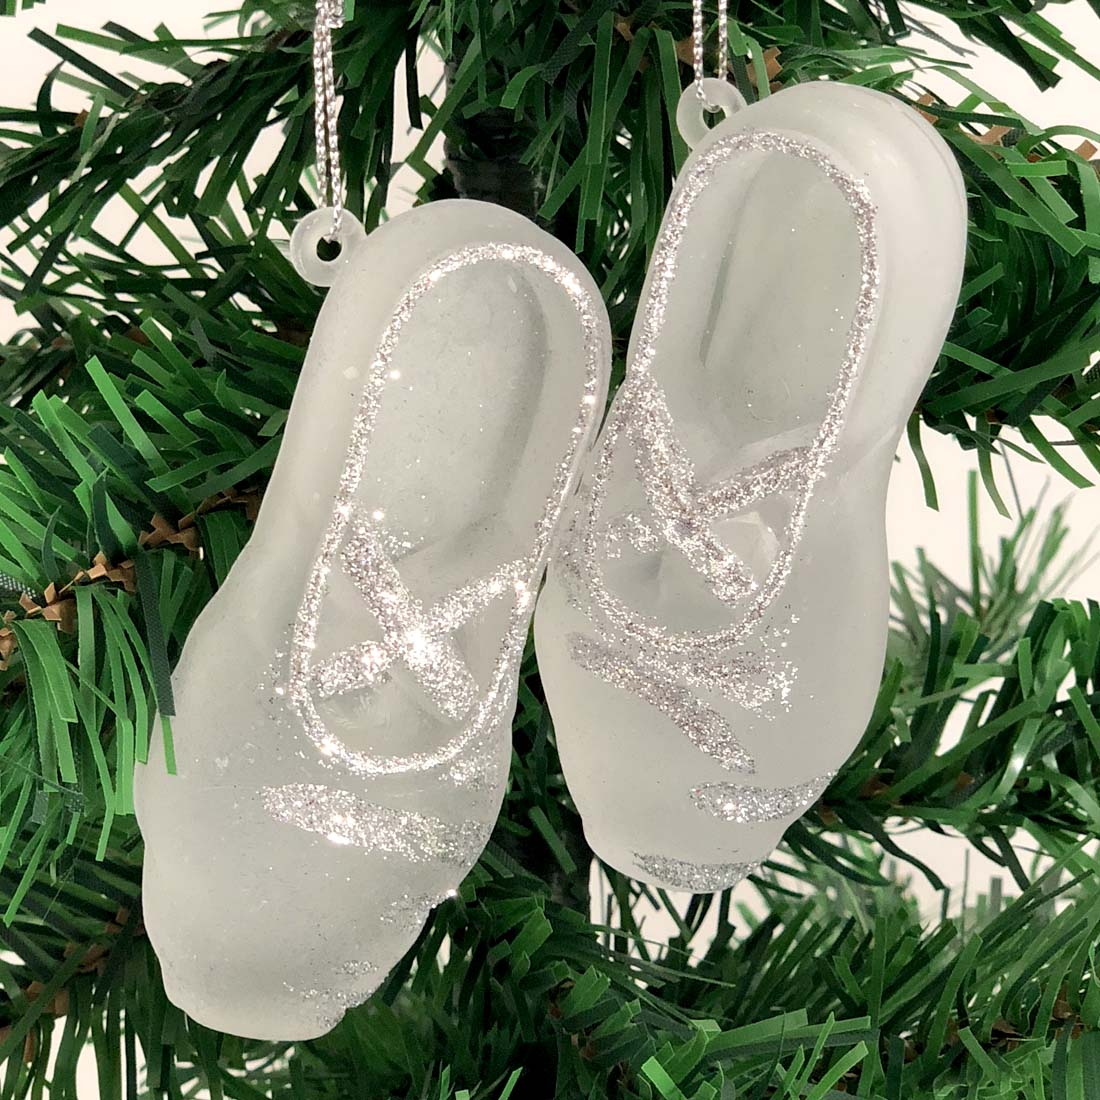 View CHRISTMAS BALLET SHOE ORNAMENT 2 PACK 3.5x1.5 INCH ASSORTED COLORS PREPRICED AT $2.99